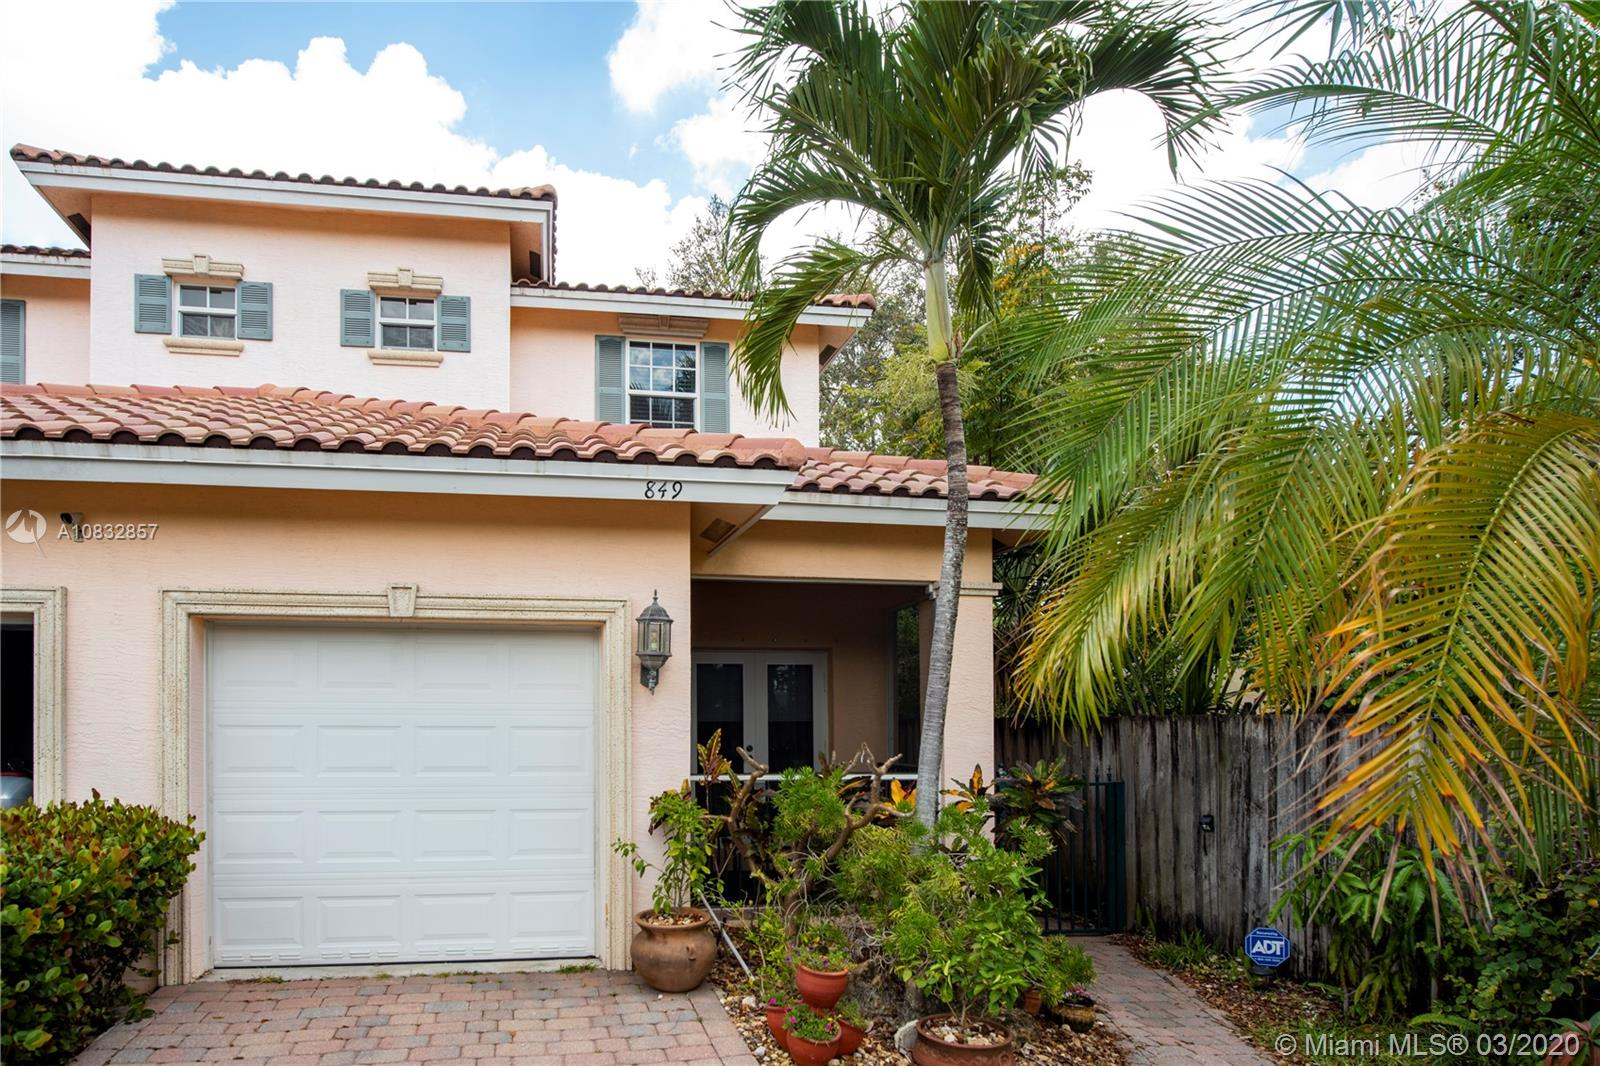 ***OWNER WILL ENTERTAIN SHOWINGS DURING CORONAVIRUS SHUTDOWN****LIVE IN LUXURY! ***NO HOMEOWNERS ASSOCIATION***A RARE FIND!  CONVENIENTLY LOCATED TO DOWNTOWN, BROWARD GENERAL HOSPITAL, HIGHWAYS & THE AIRPORT. THIS 3 BEDROOM 2.5 BATH TOWNHOUSE (ONLY ONE UNIT CONNECTING PROPERTY) WITH ***IMPACT WINDOWS/DOORS*** ALL BEDROOMS ON 2ND FLOOR!  KING SIZE MASTER W/LUXURY BATH. BEAUTIFUL WOOD CABINETRY IN THE KITCHEN W/STAINLESS APPLIANCES. HIGH CEILINGS, CROWN MOLDINGS, PLANTATION SHUTTERS & TILED FLOORS ADD TO THE AMBIANCE OF THIS HOME. THERE IS A COVERED PORCH W/AN EXTENDED PATIO AREA OVERLOOKING THE FENCED BACKYARD. 1 CAR GARAGE!   PERFECT FOR INVESTORS - BUY & RENT IMMEDIATELY!